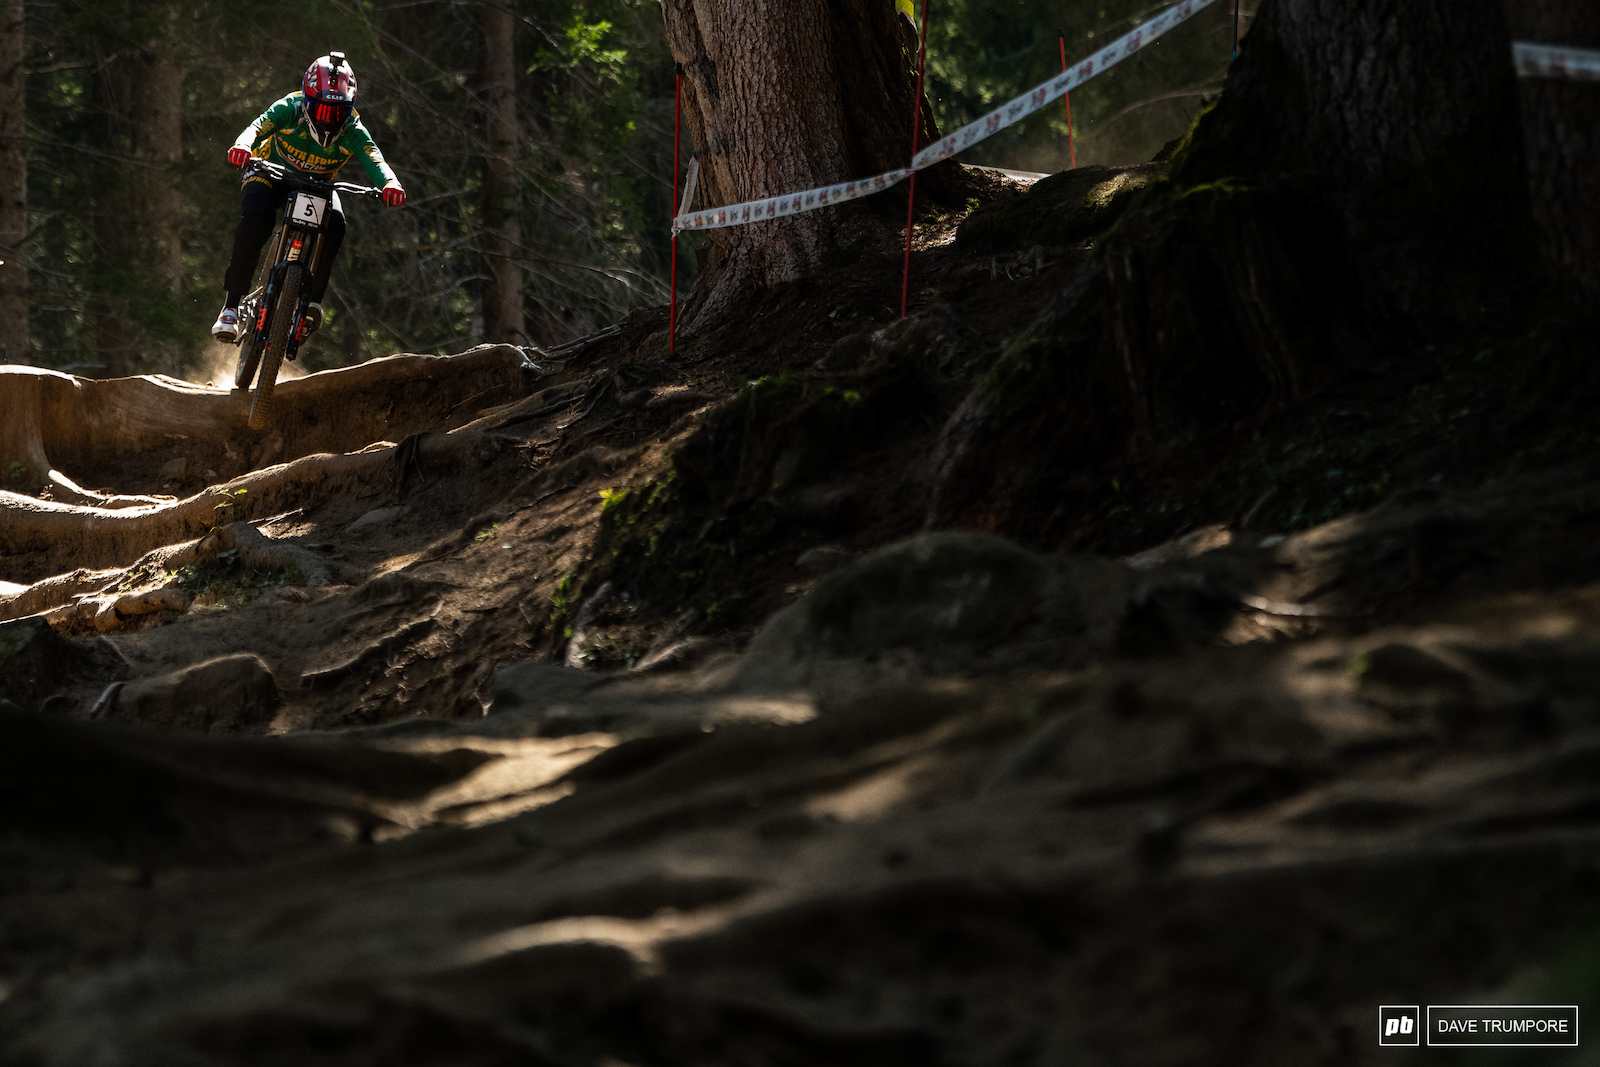 Greg Minnar looking to take home his first World Champs medal since 2015